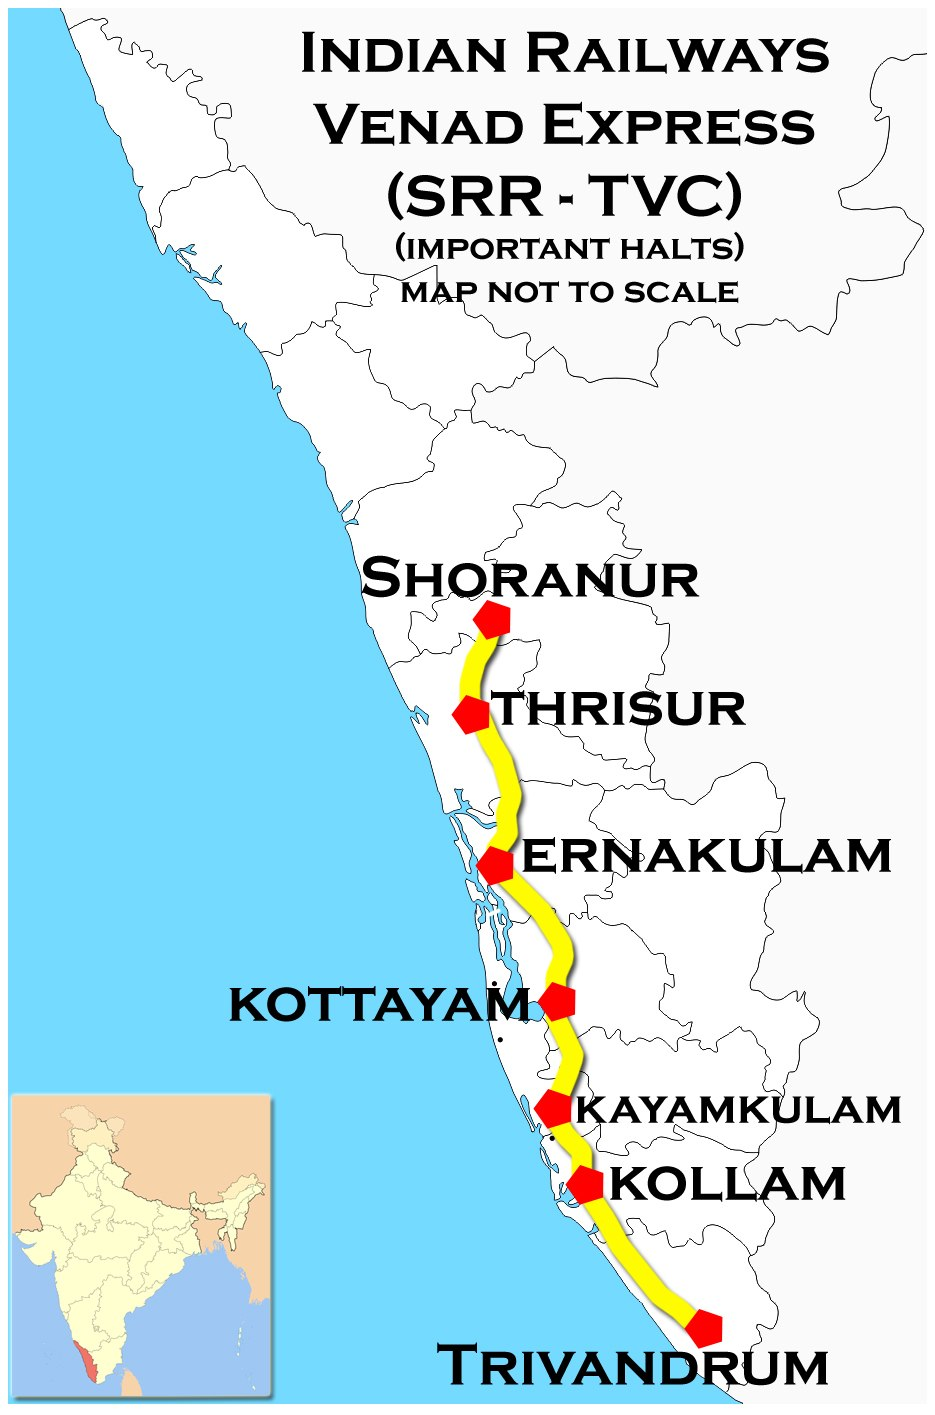 Venad Express (Shoranur - Trivandrum) Route map